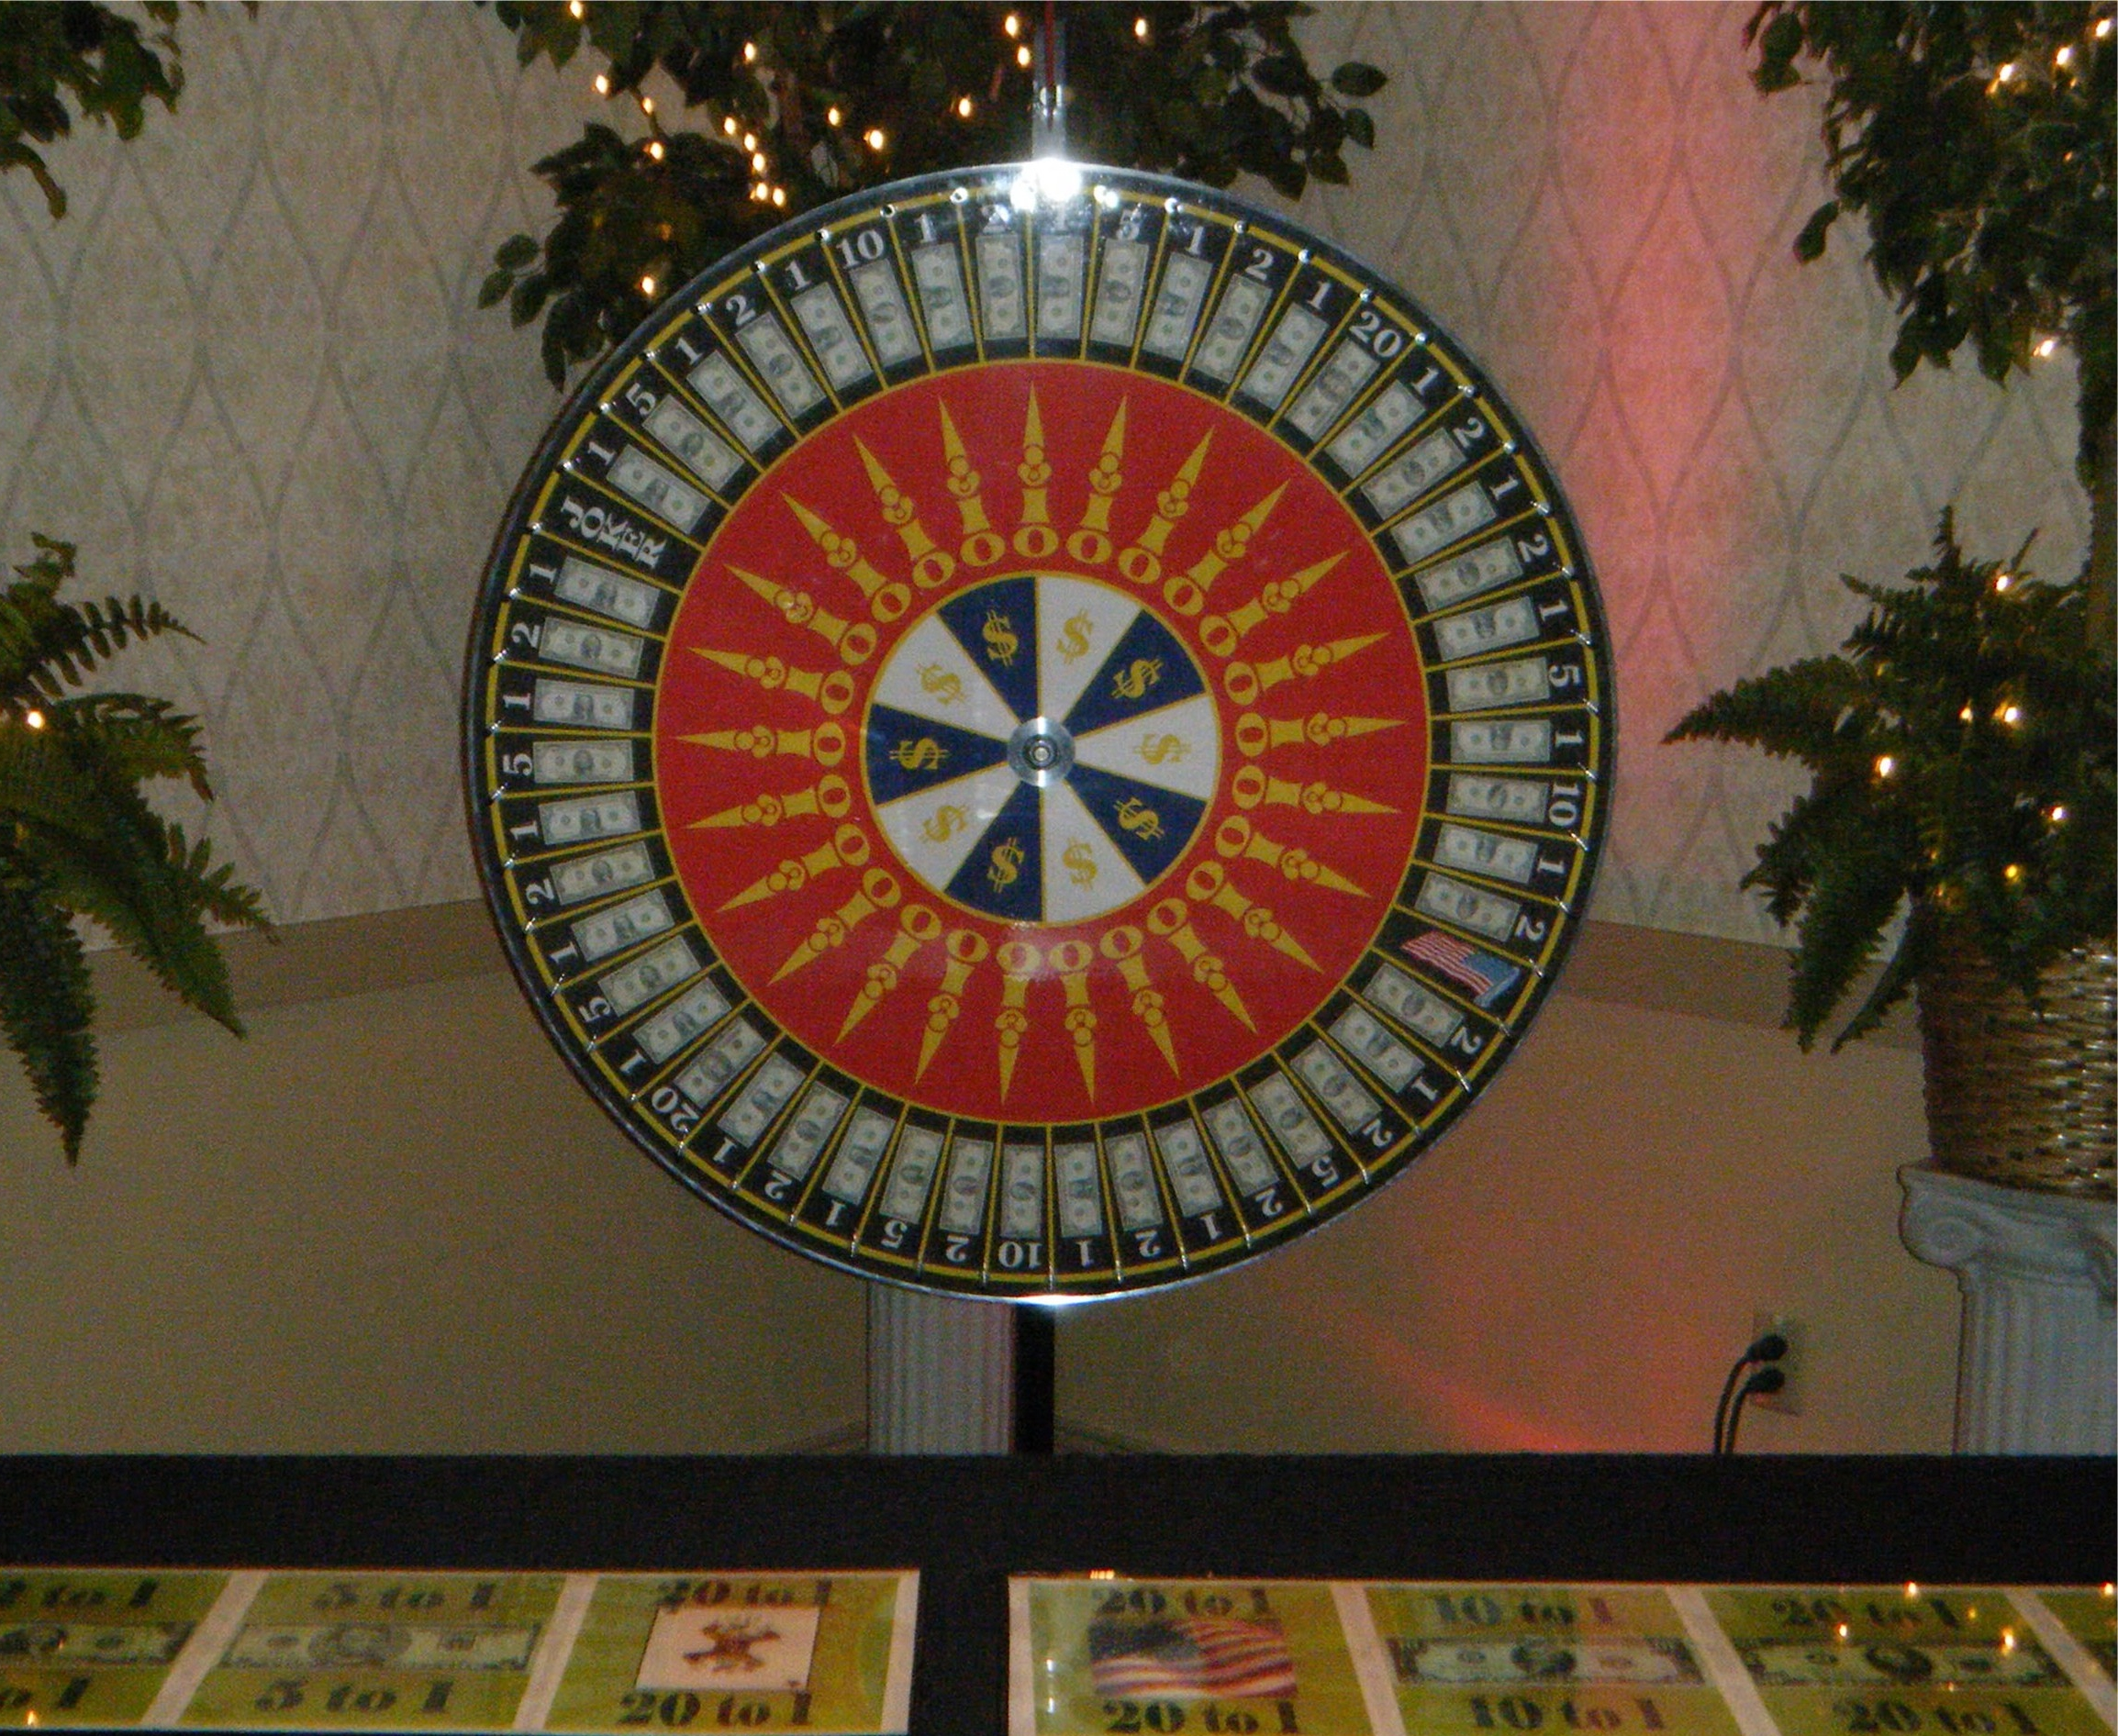 Money Wheel, Casino Wheel, Monte Carlo Night, Pittsburgh Entertainment